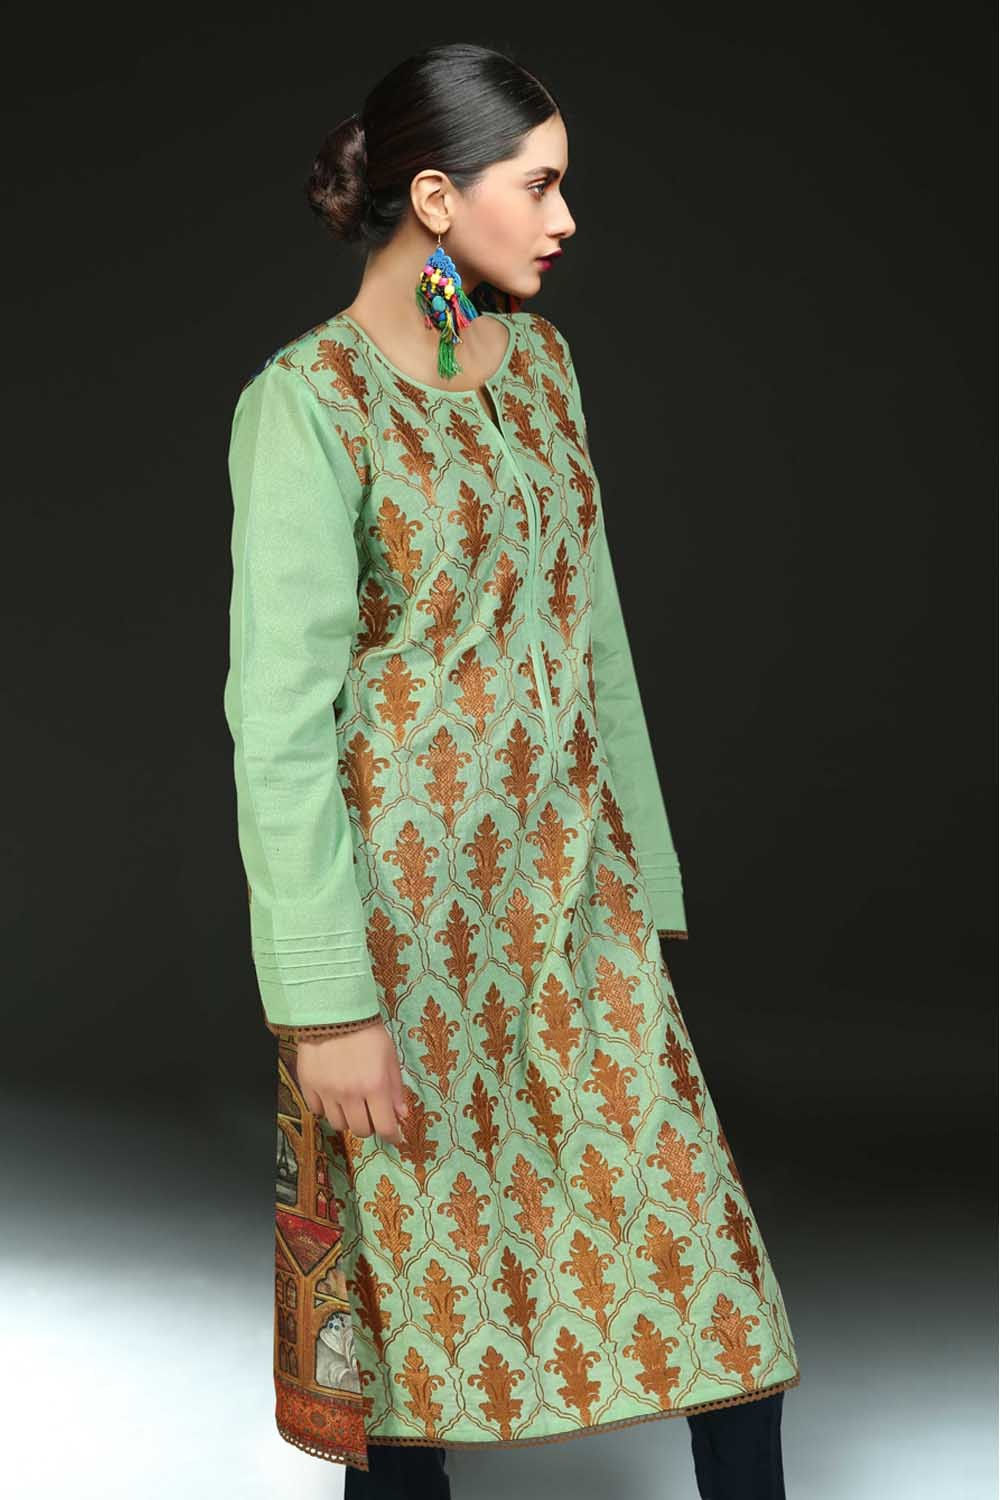 Nimsay New Lawn Collection 2020 - Fashion Style Trends 2019 |Nimsay New Collection